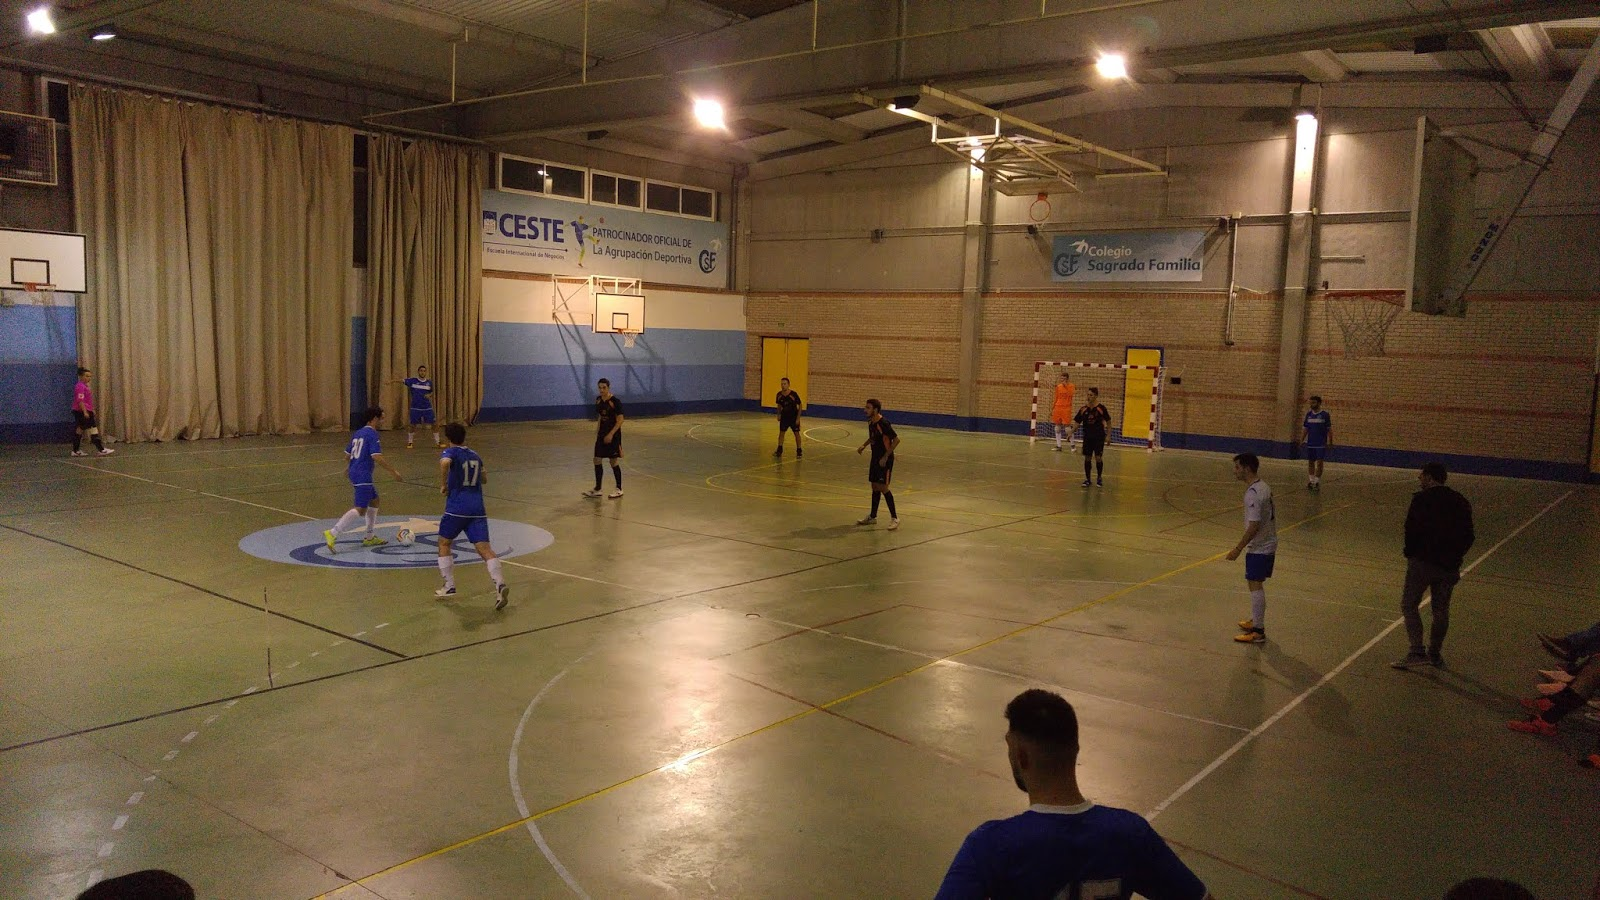 Image Result For Futbol Sala Utebo